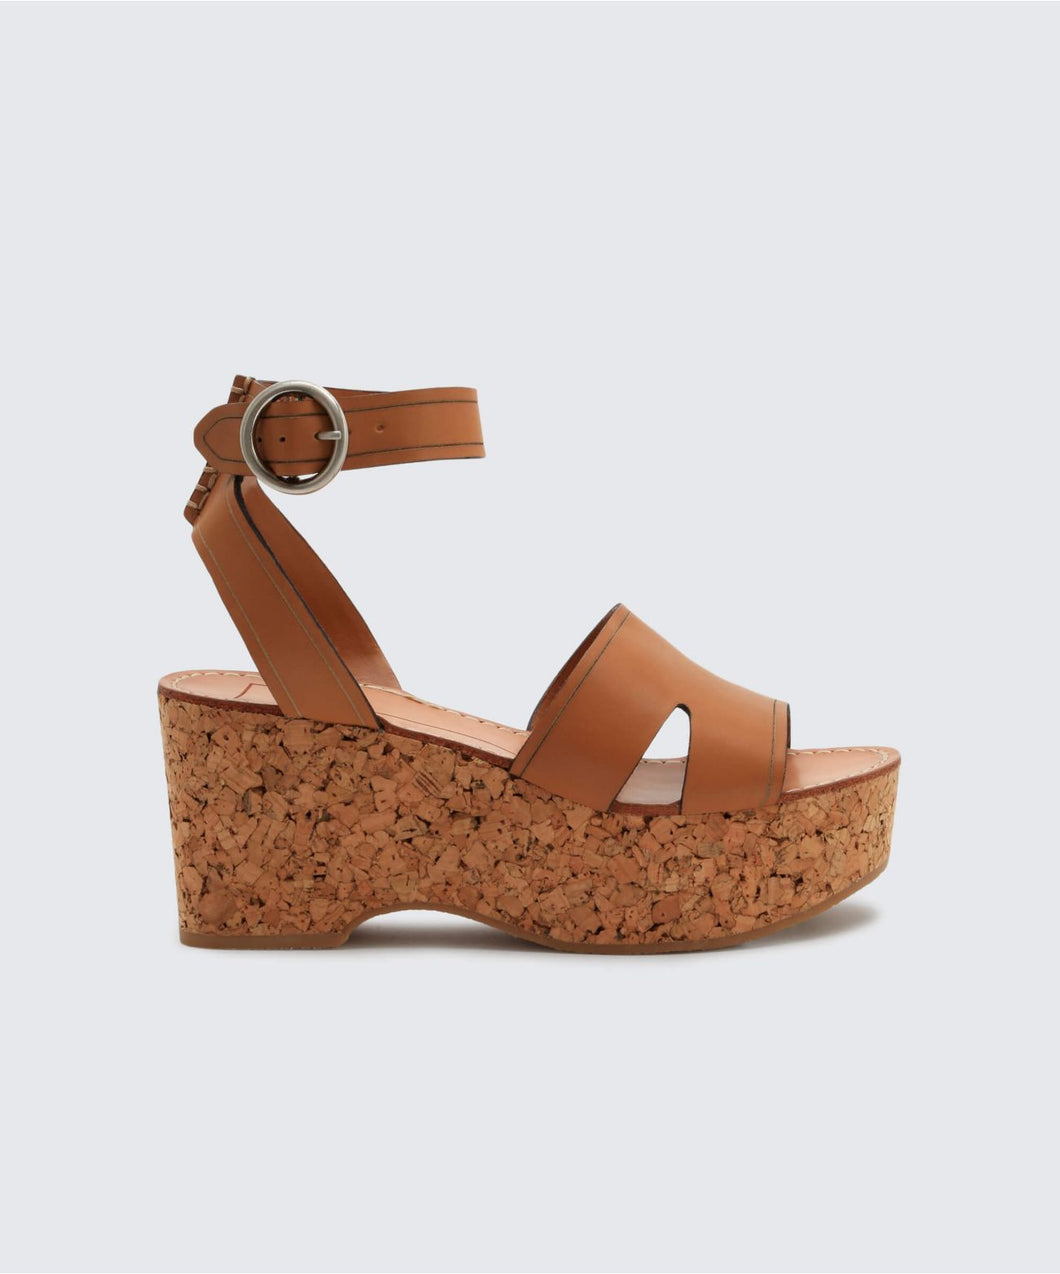 LINDA WEDGES IN CARAMEL -   Dolce Vita